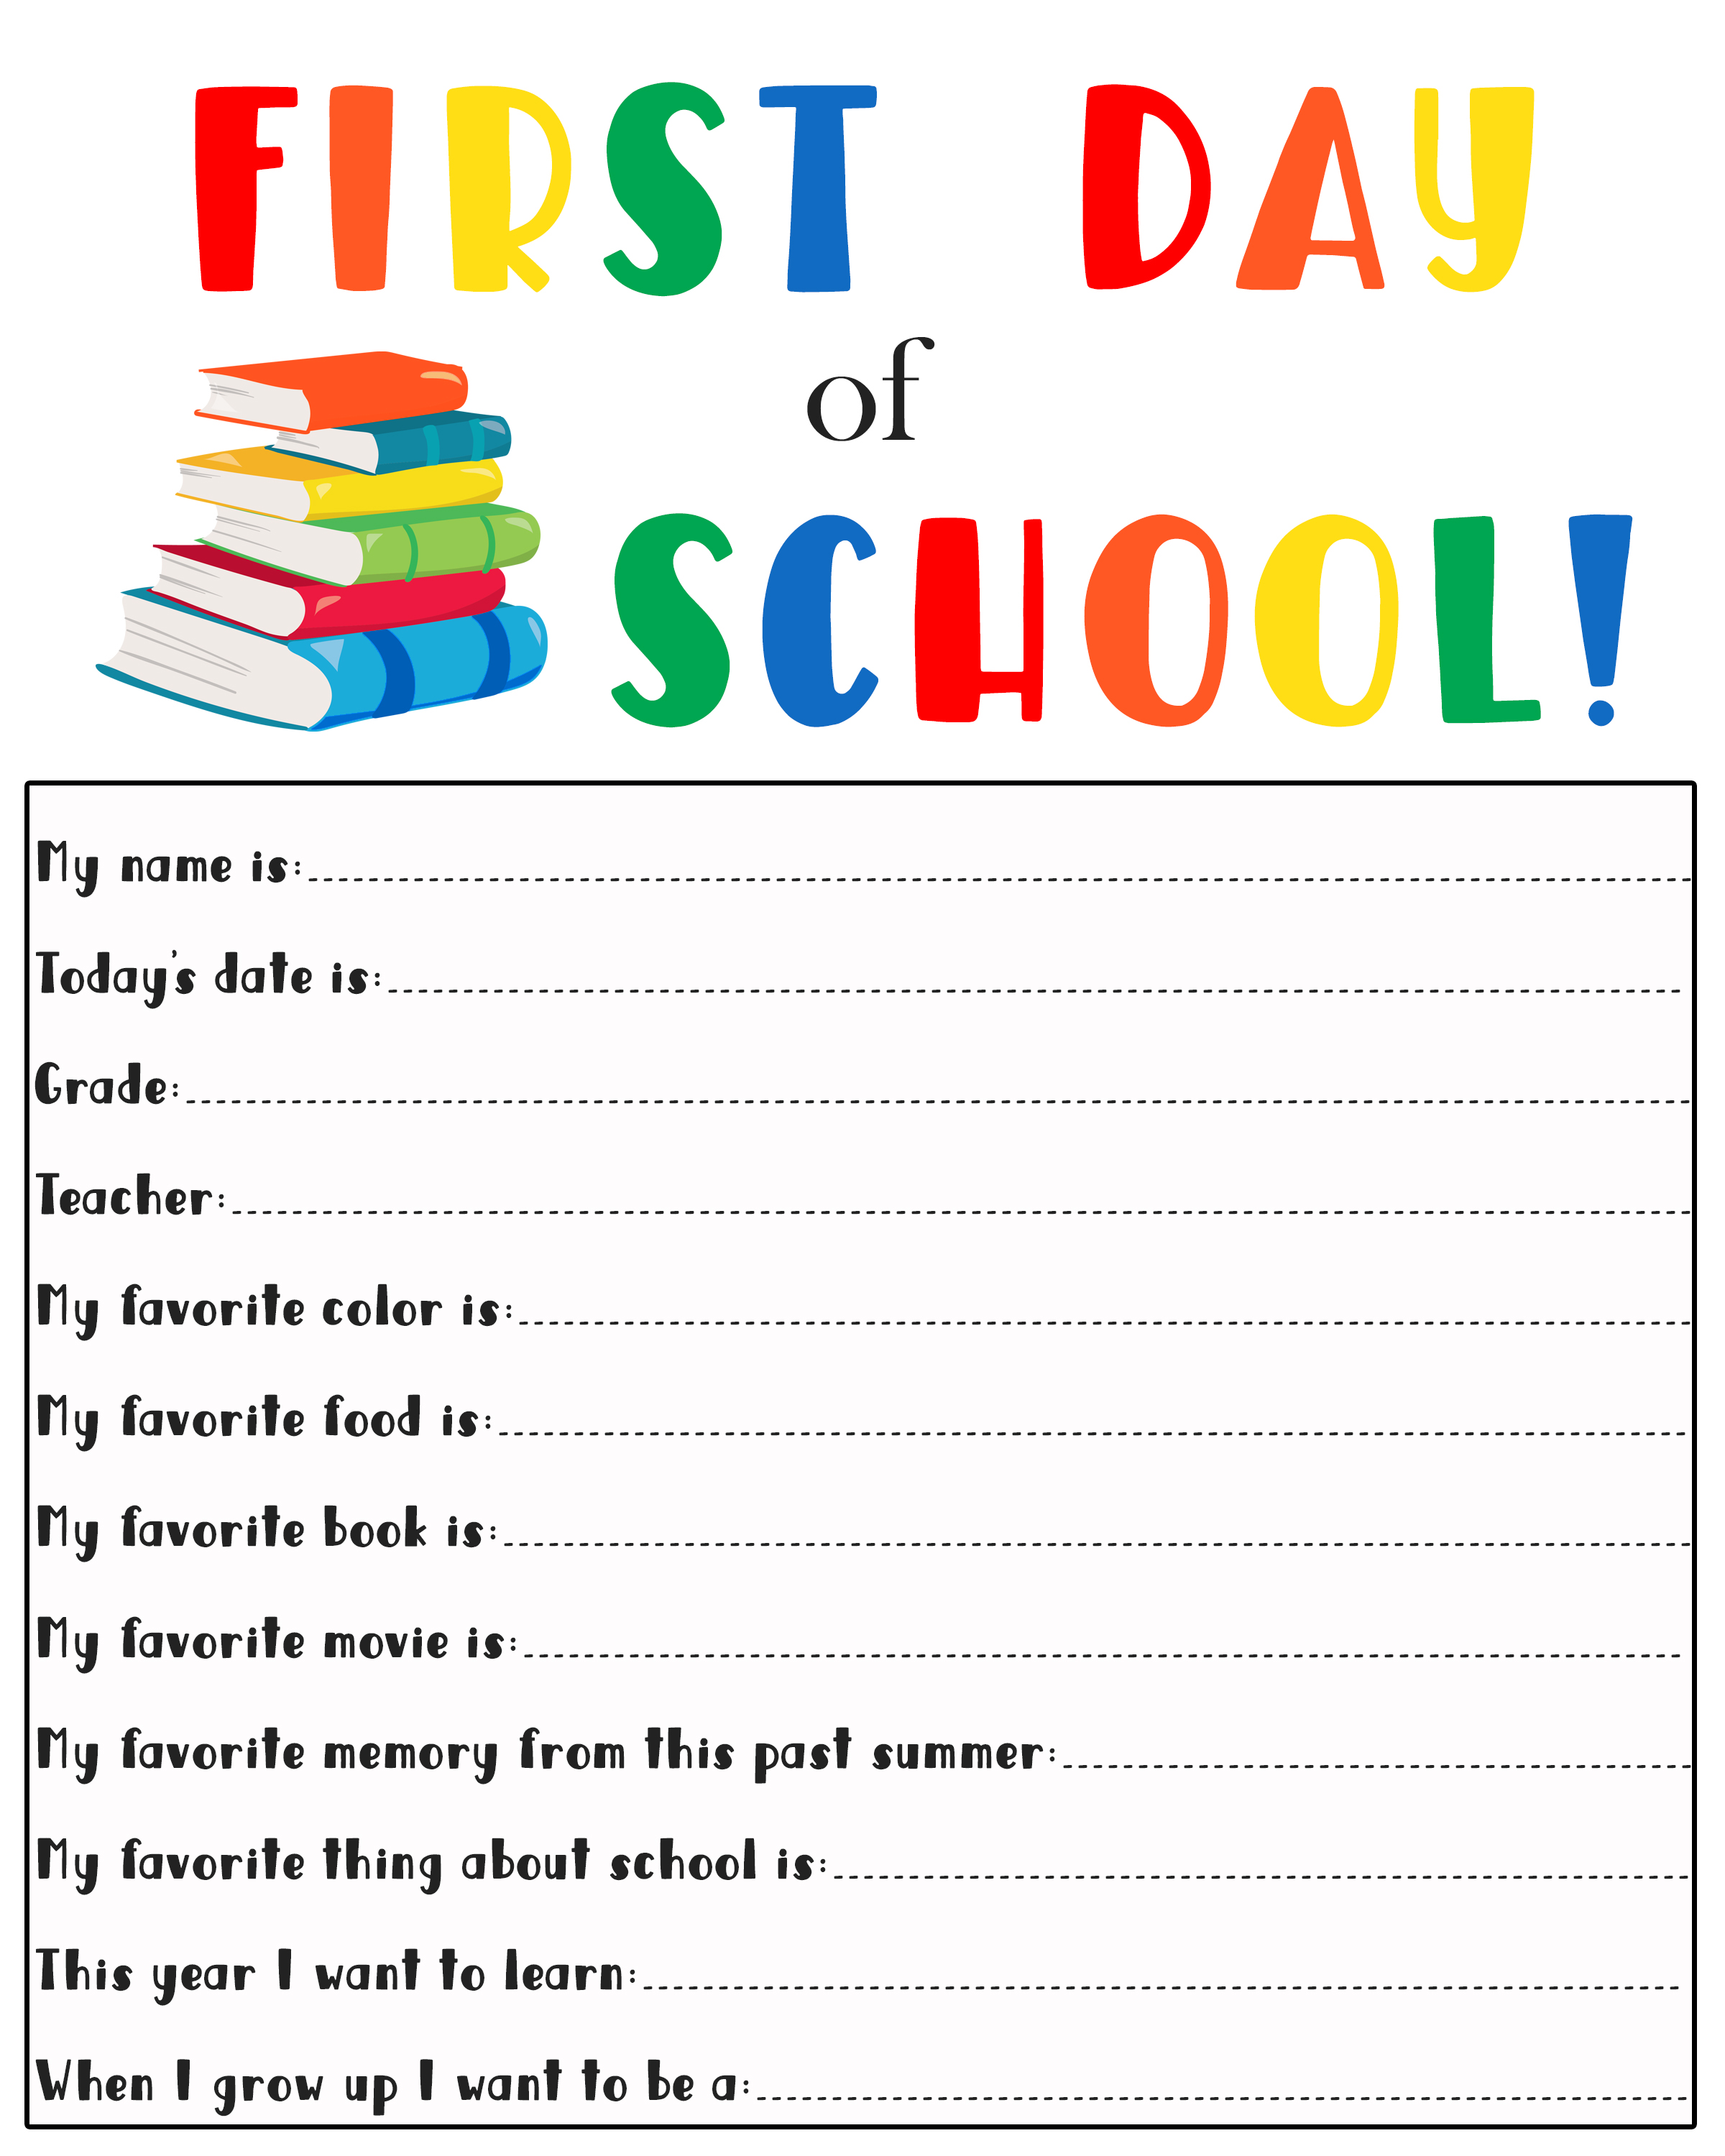 picture regarding First Day of School Printable named 1st Working day of College or university Printable - MishMash via Ash picture design and style